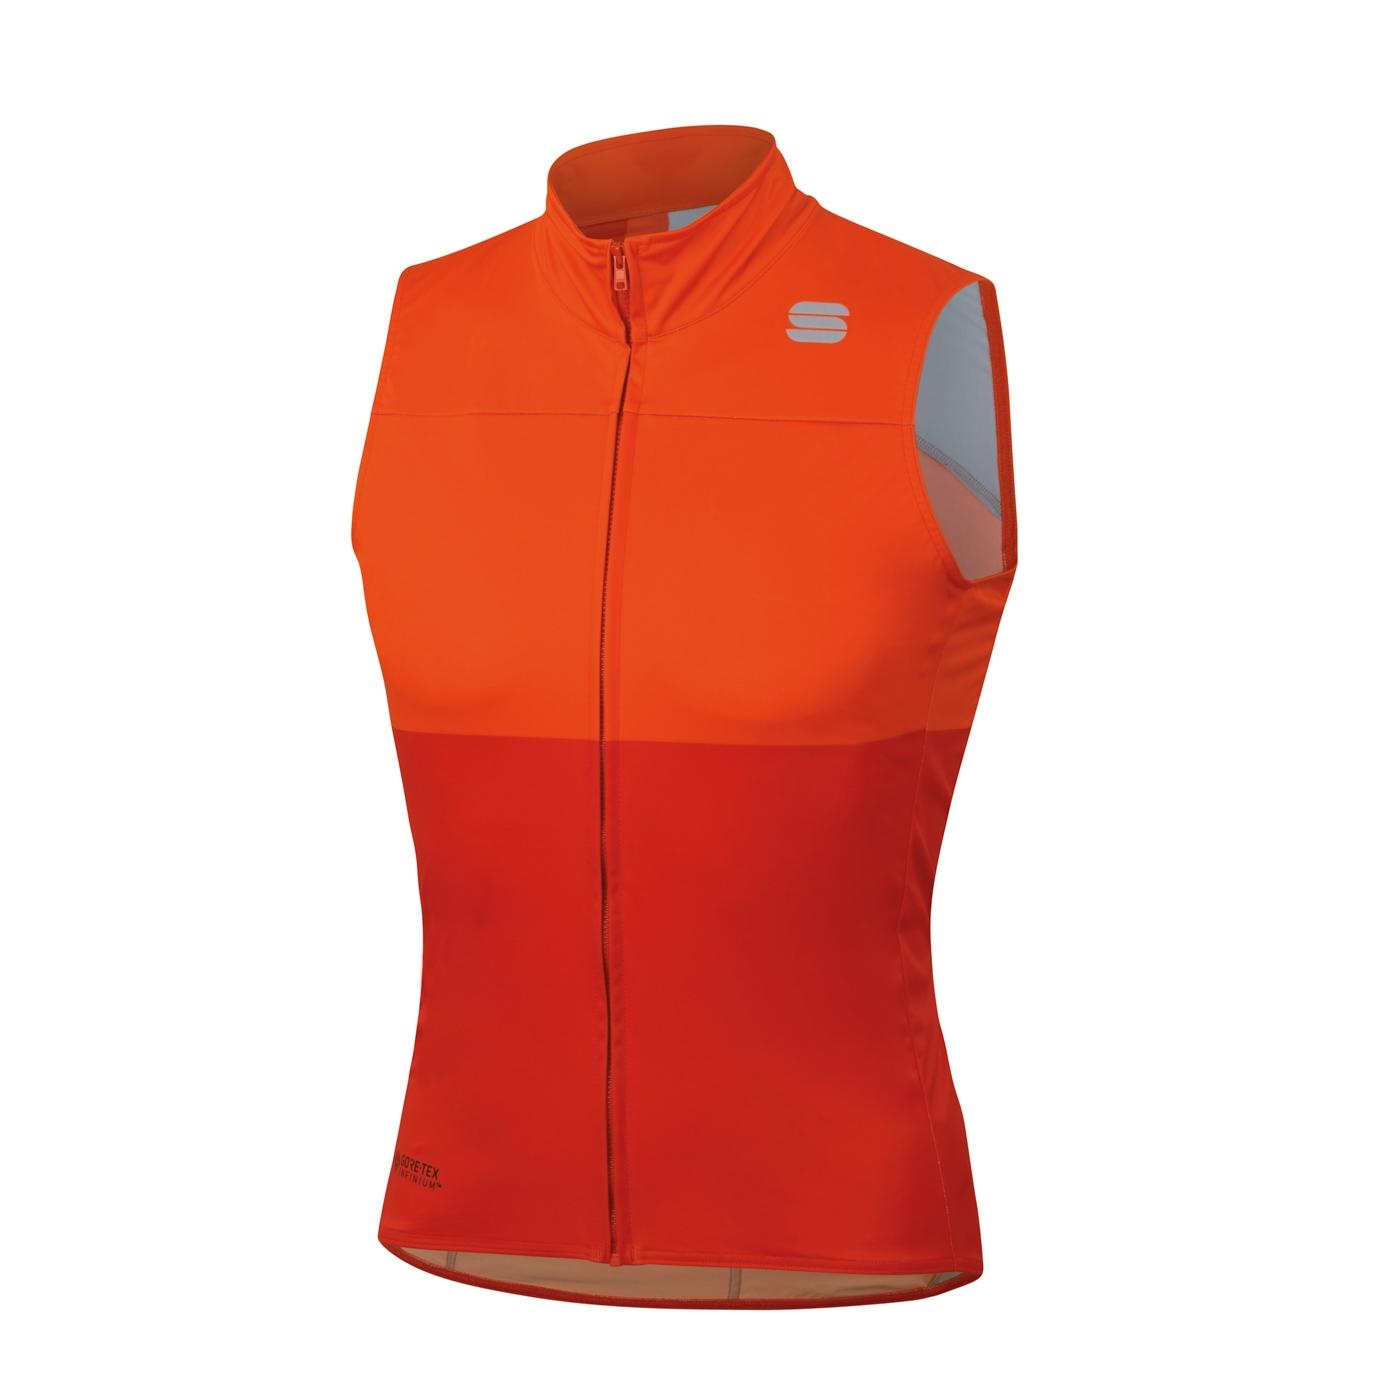 Sportful Windstopper Mouwloos voor Heren Rood Oranje - SF Bodyfit Pro Vest-Fire Red Orange Sdr